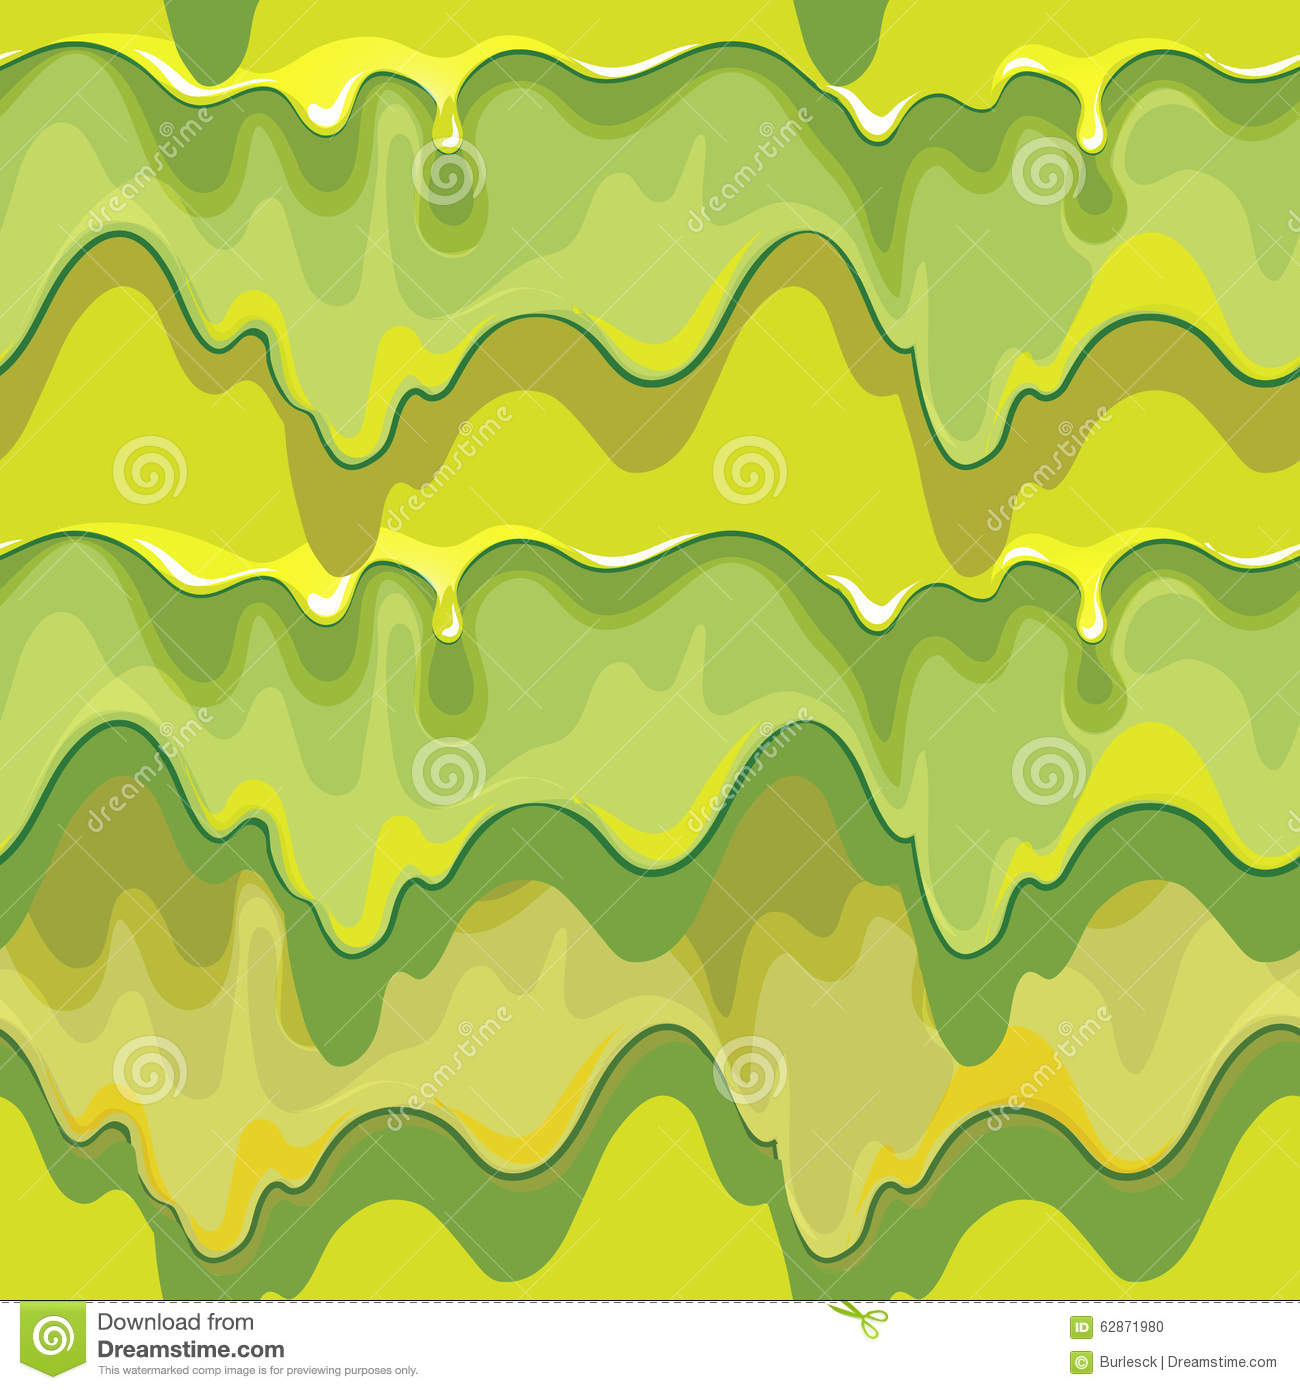 Oozing green slime vector seamless pattern